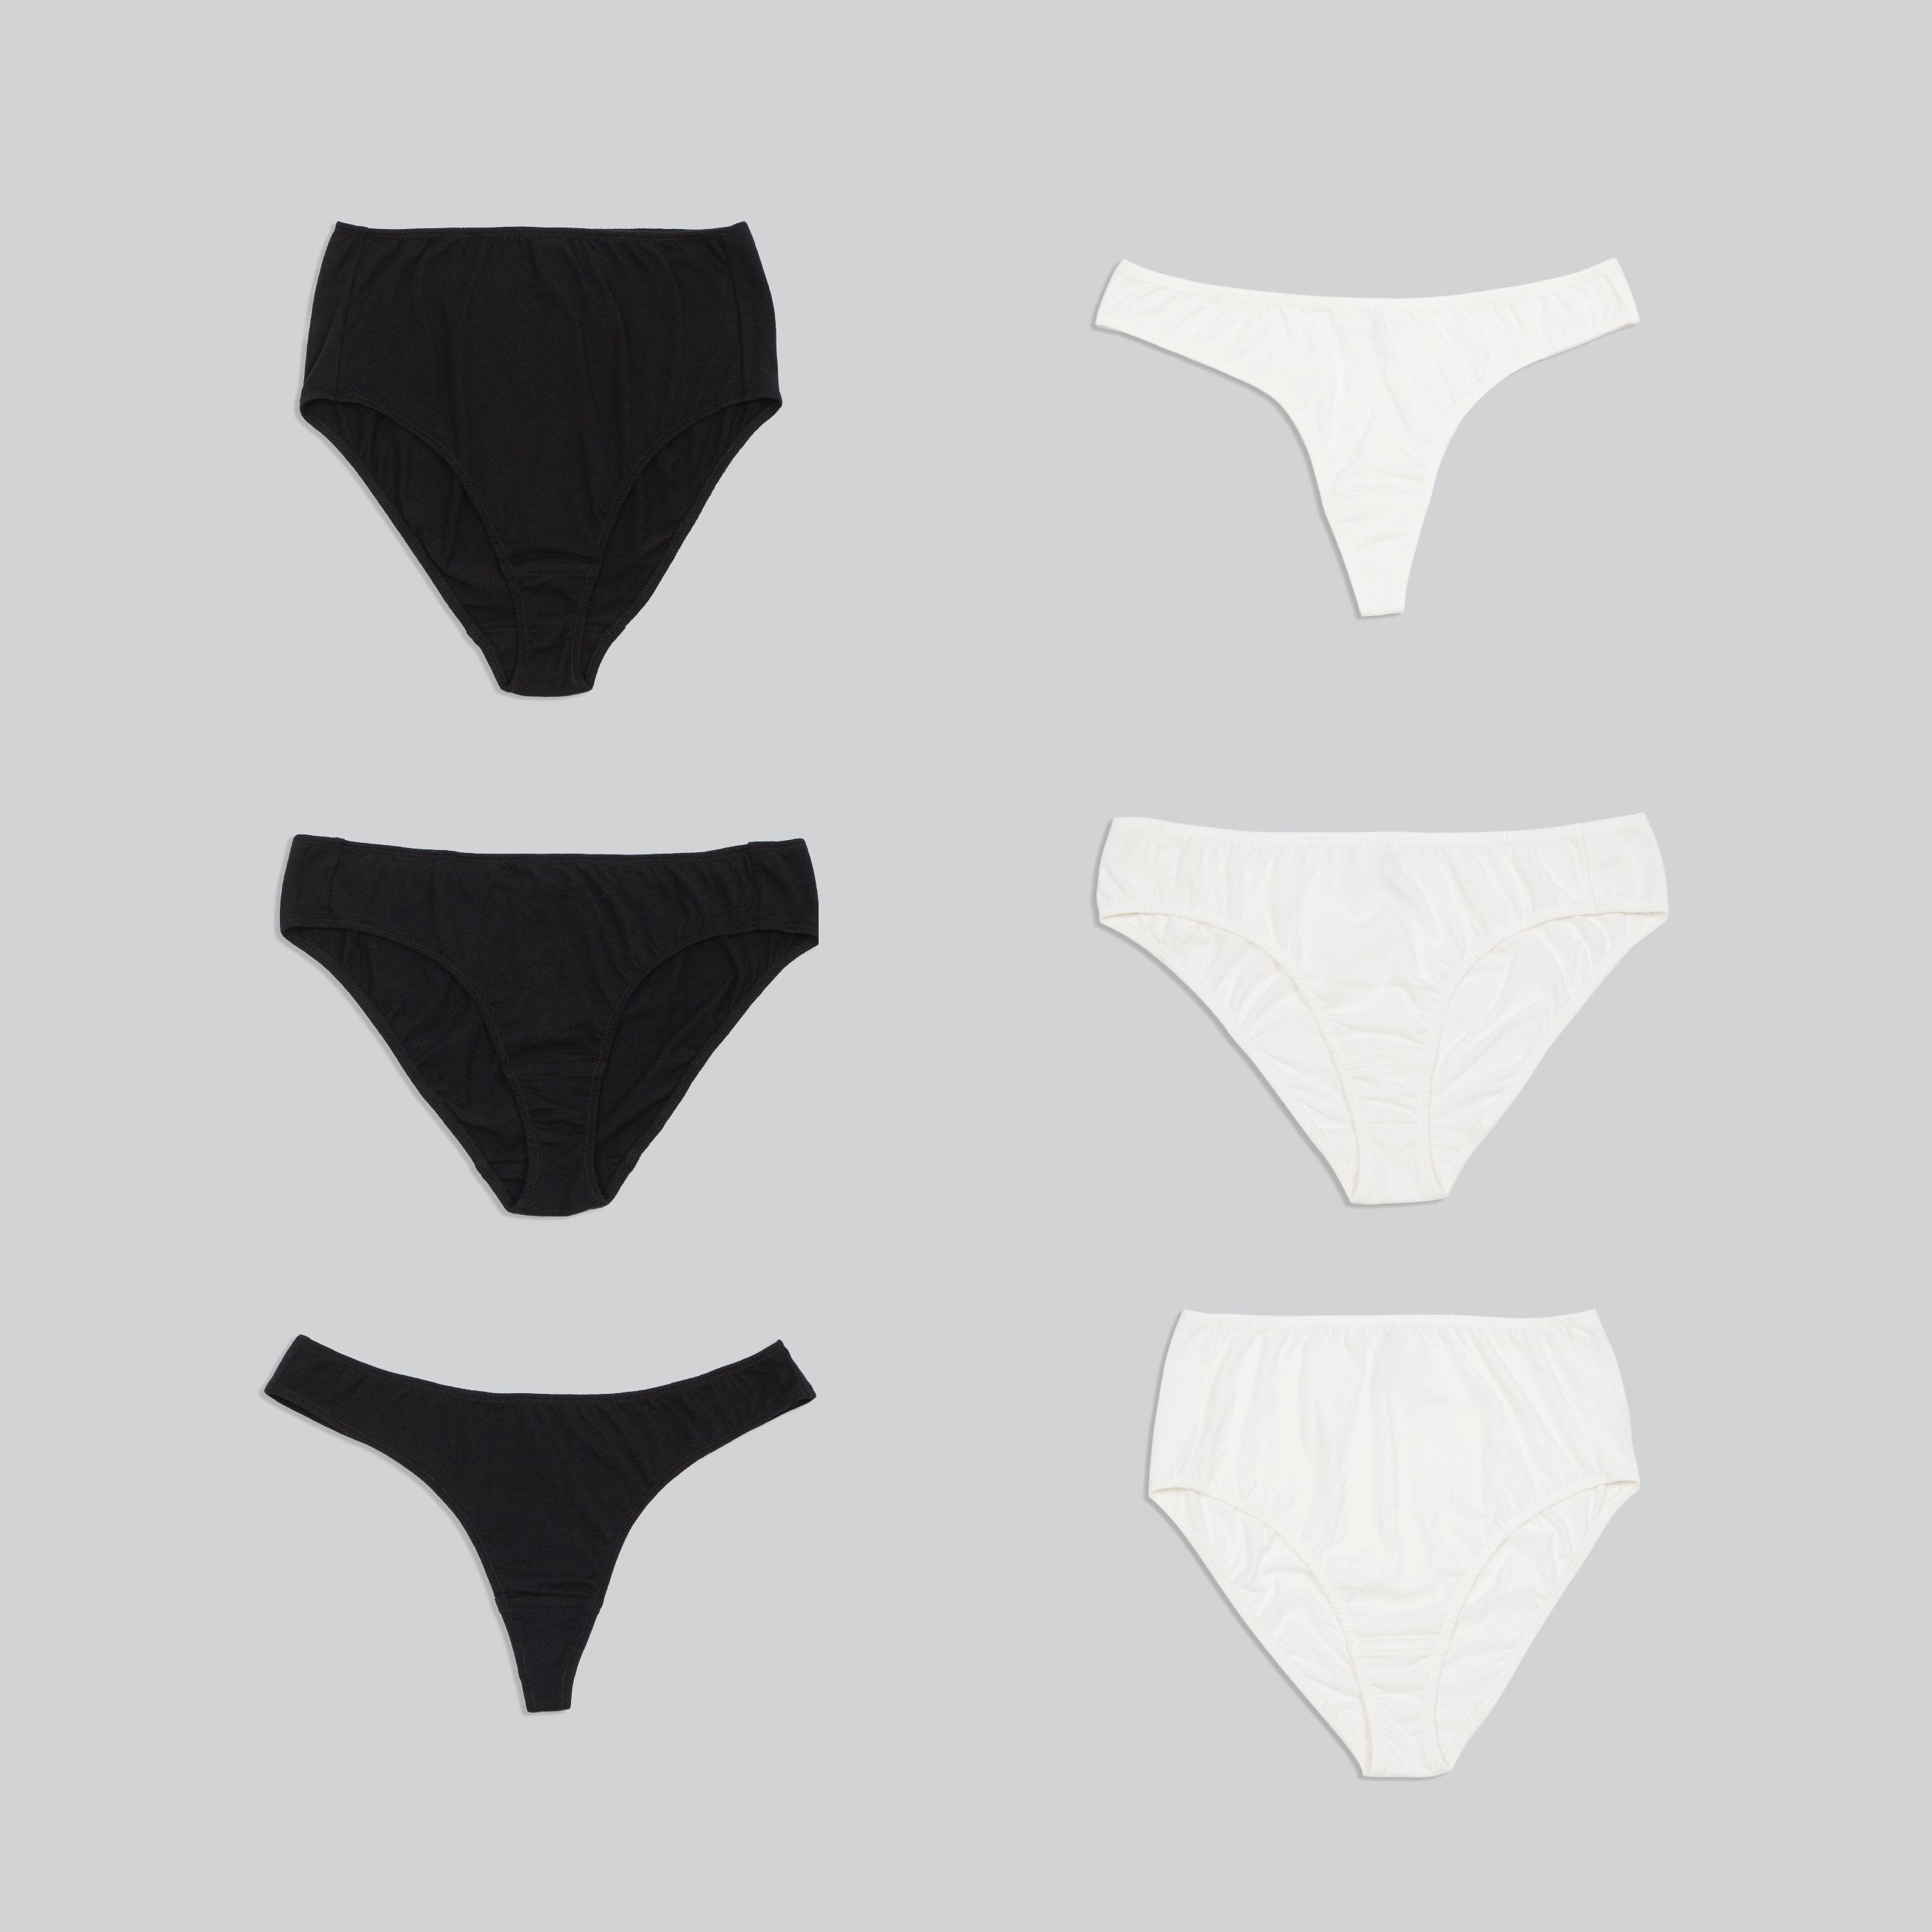 six pairs of organic cotton underwear in white and black